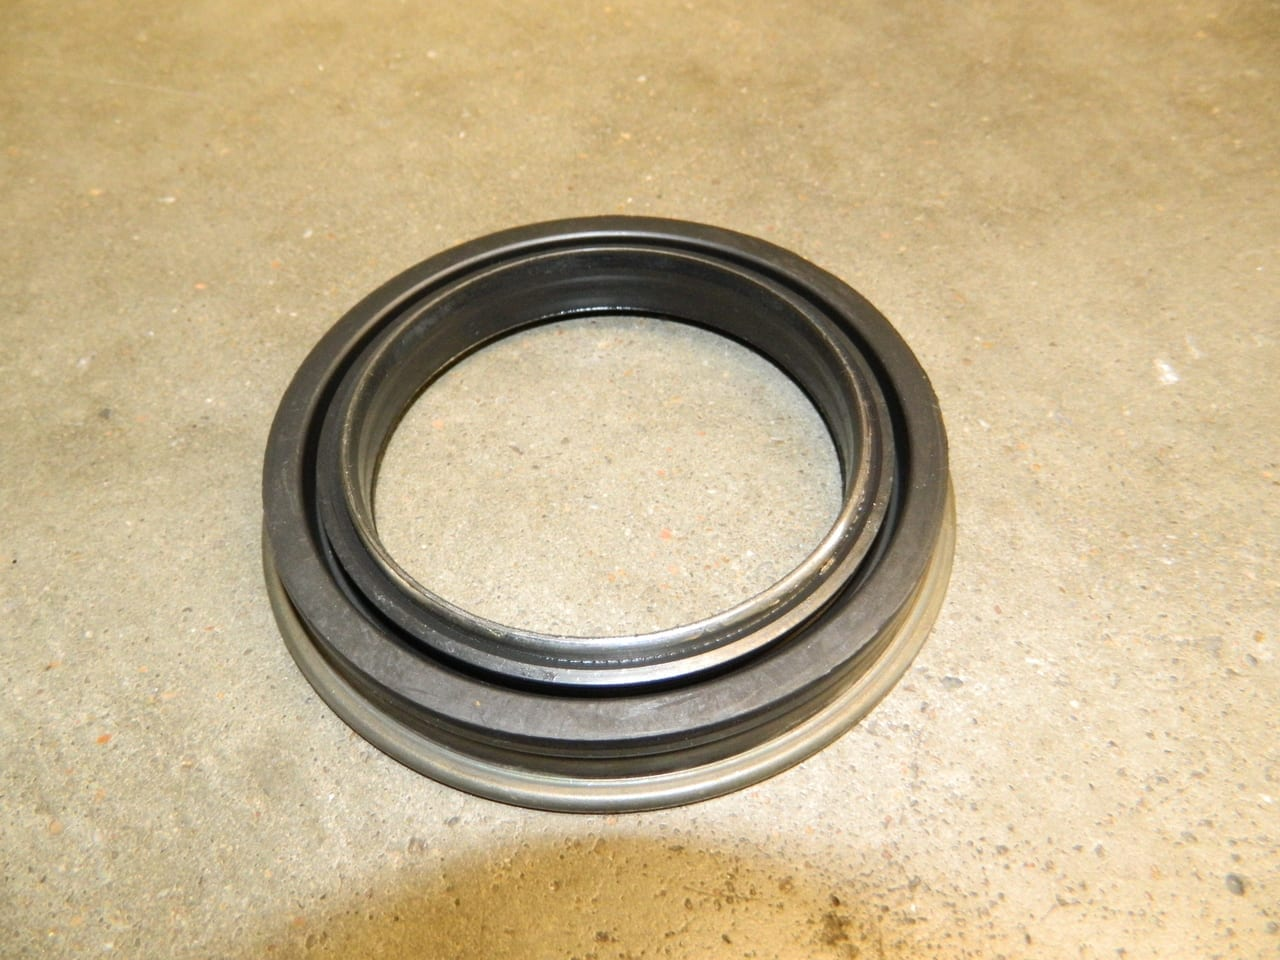 2003+ Dodge Ram 2500/3500 Single Rear Wheel Hub Seal 10.5/11.5 AAM